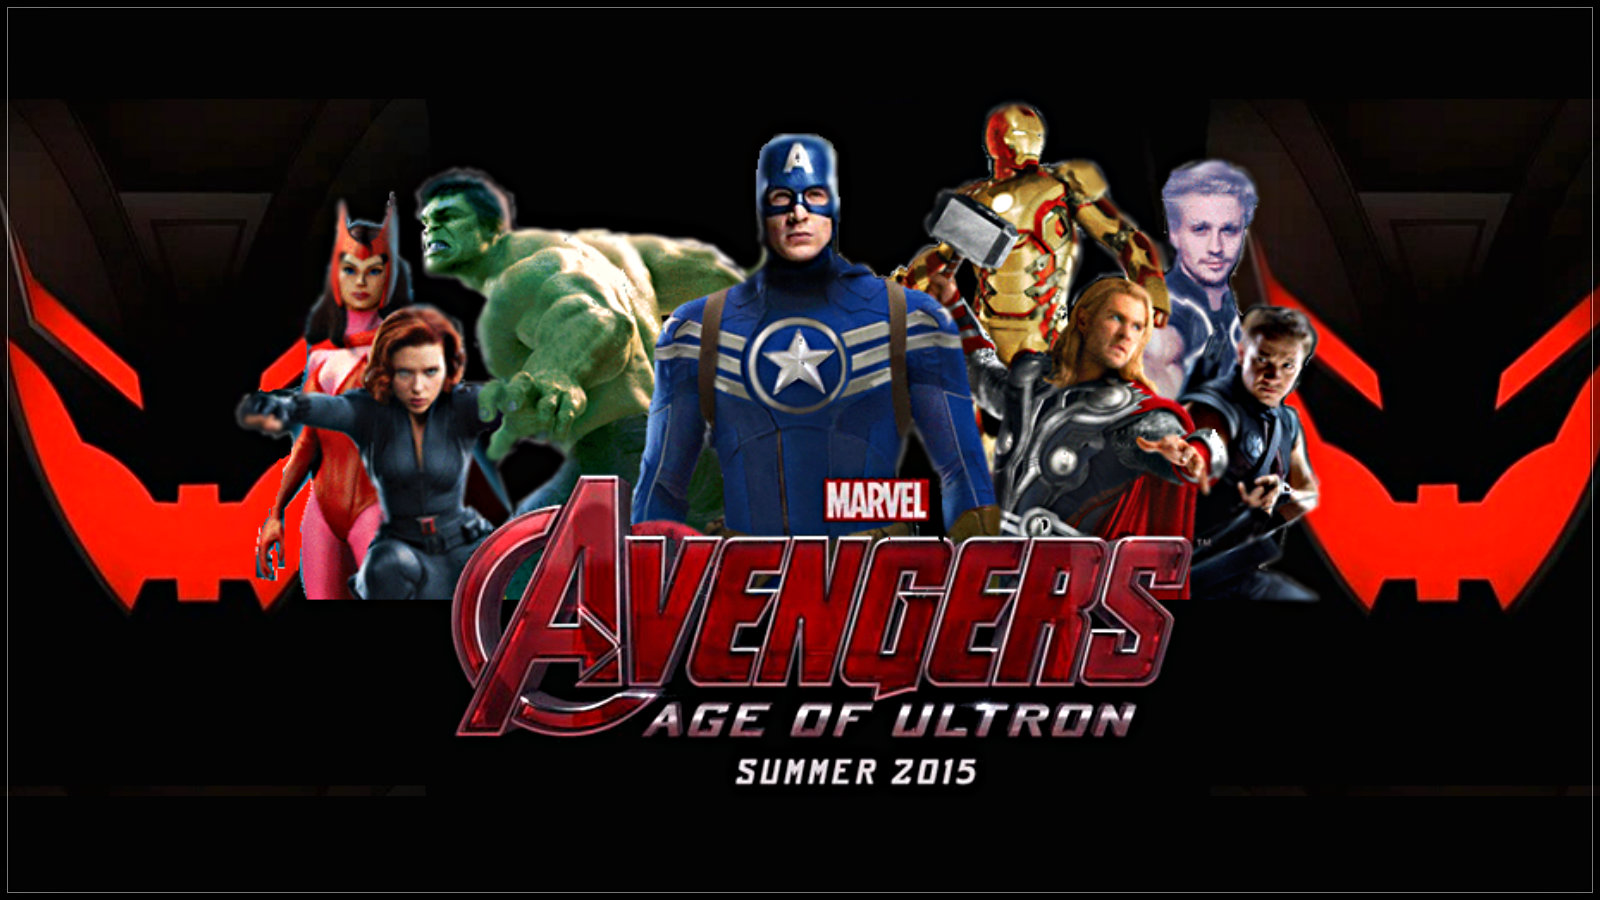 the avengers age of ultron images avengers age of ultron hd